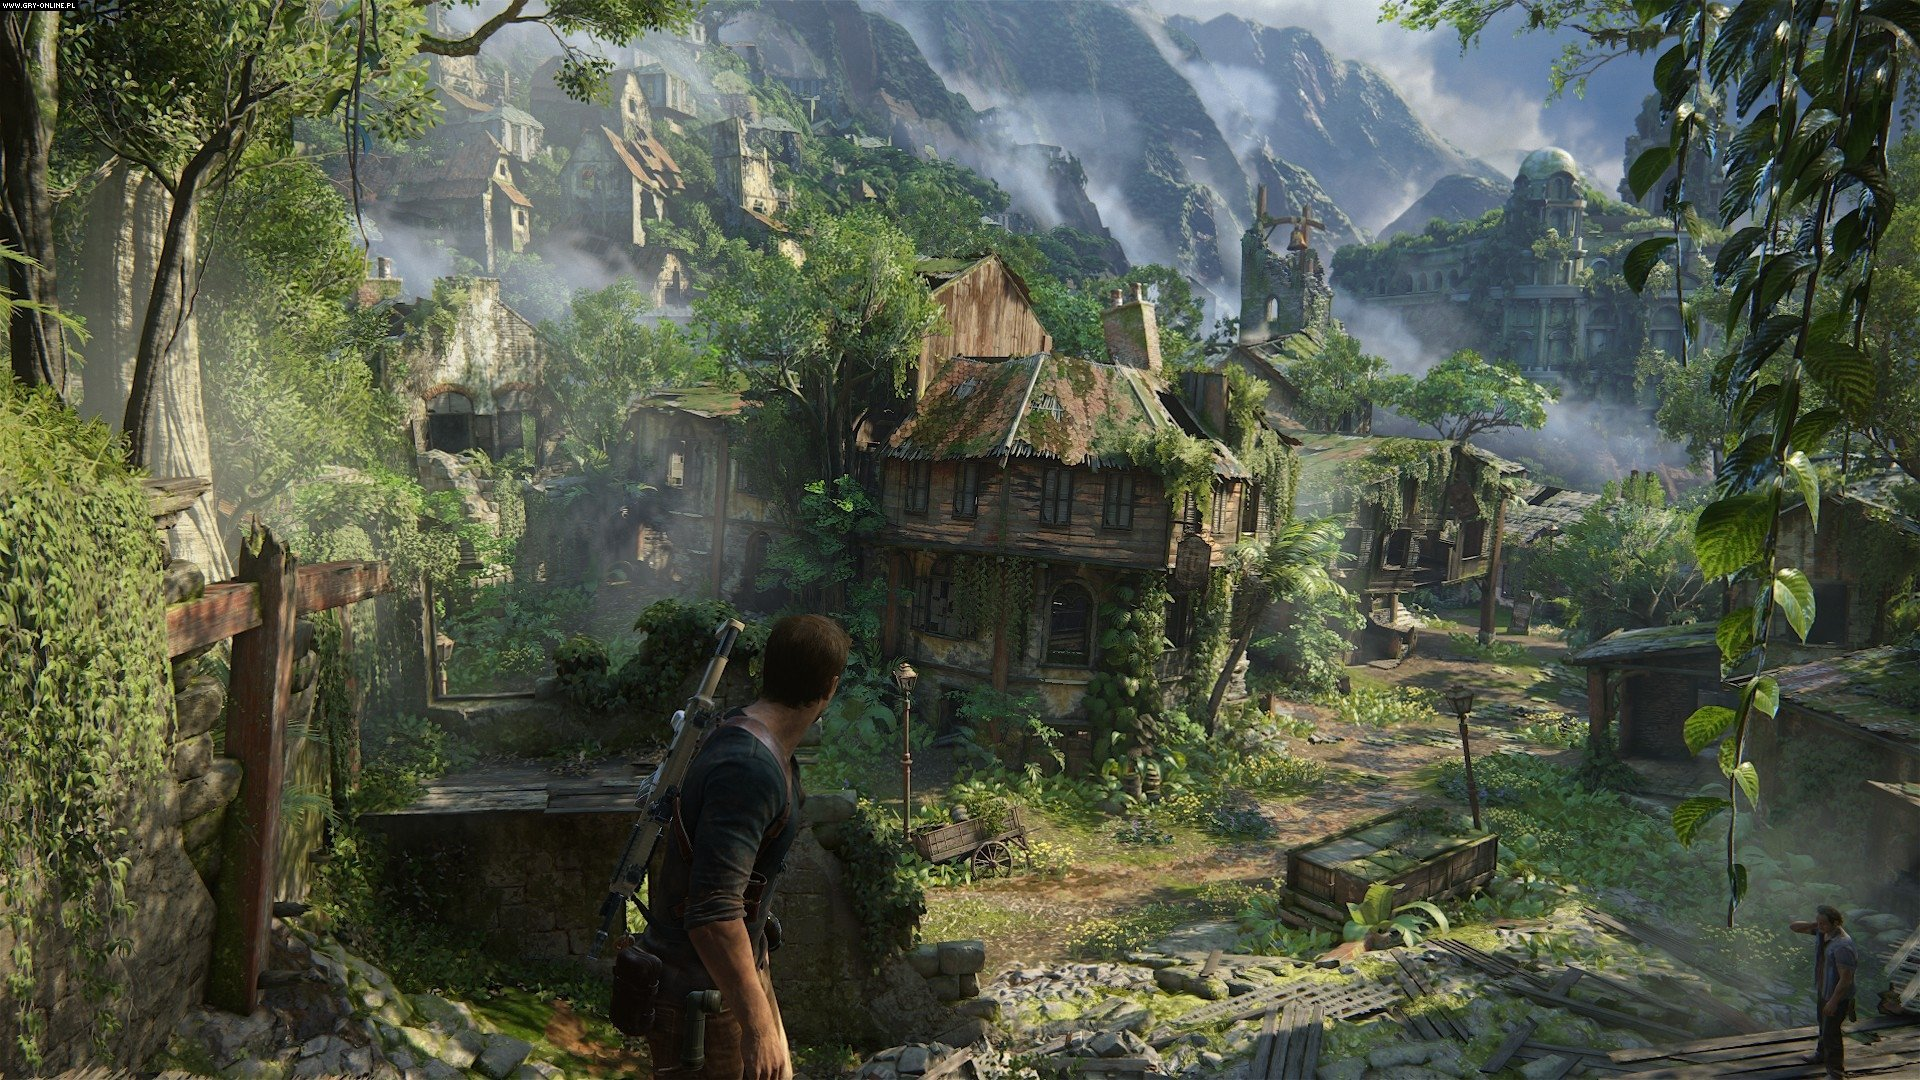 Uncharted 4: Kres Złodzieja PS4 Gry Screen 7/135, Naughty Dog, Sony Interactive Entertainment